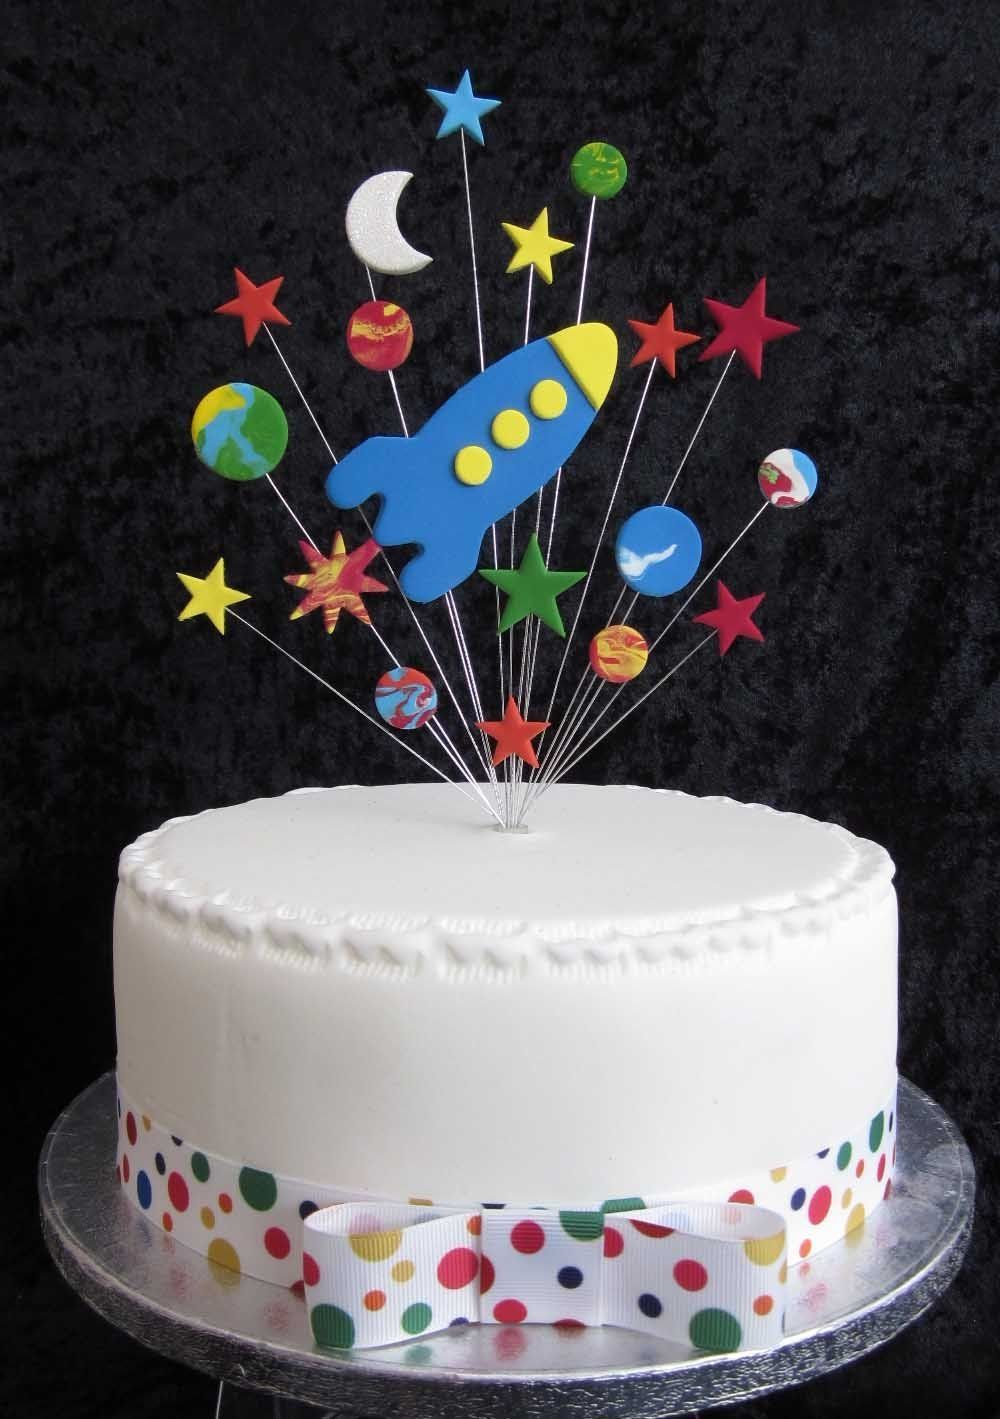 Rocket Birthday Cake Topper With Stars Planets Moon Suitable for